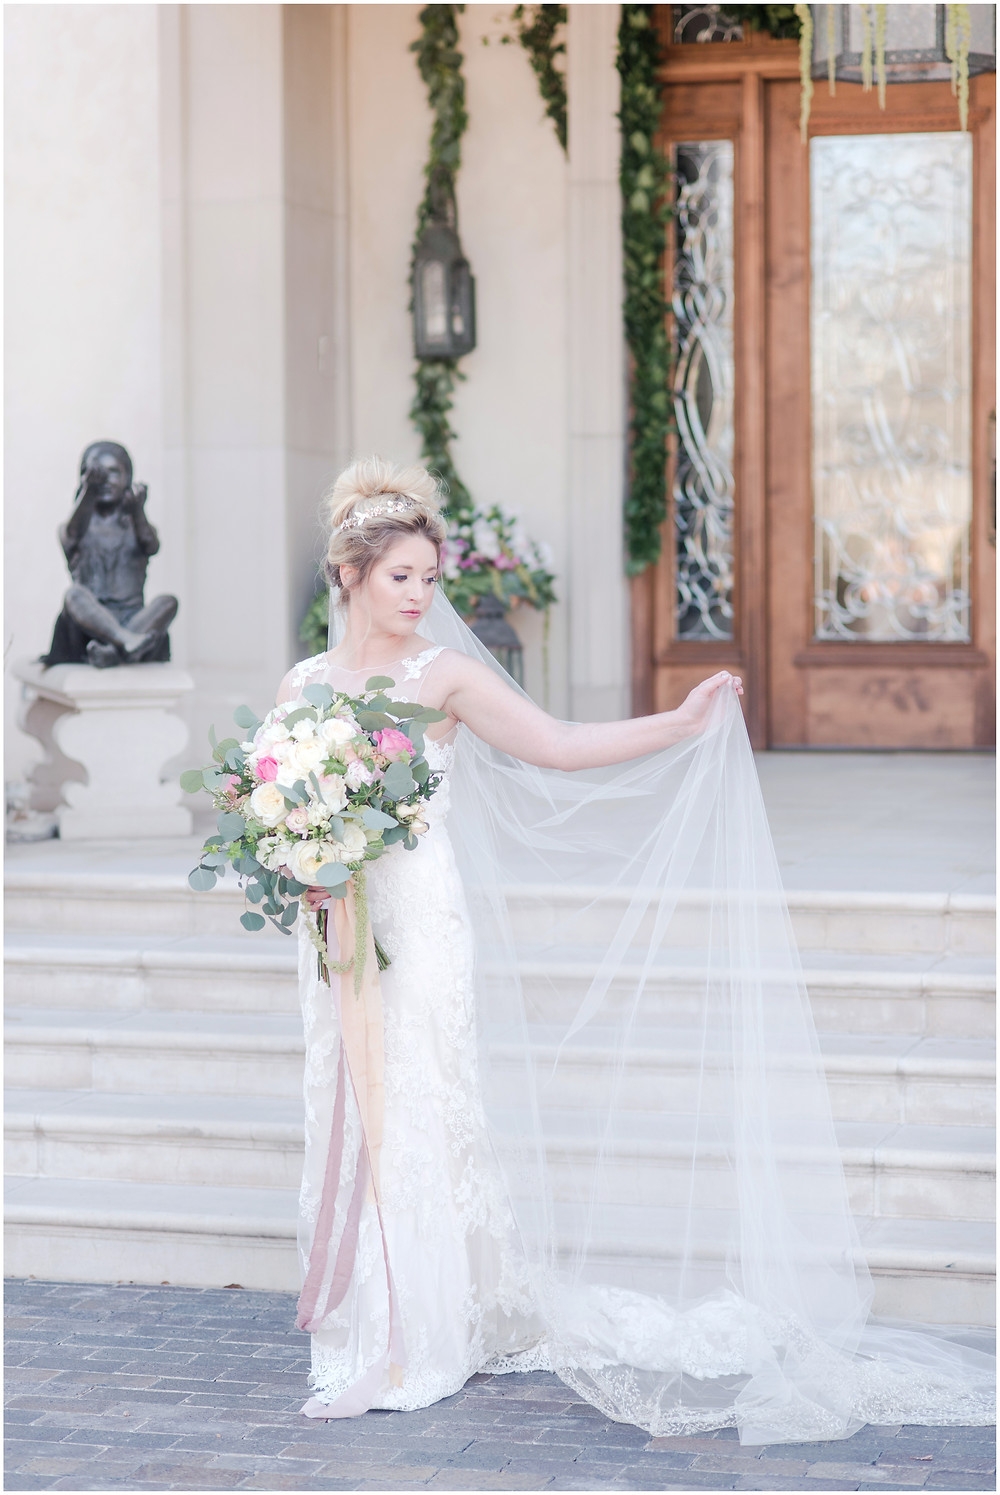 Bride with veil. How to wear cathedral veil. Big messy bouquet. bouquet with peonies and roses